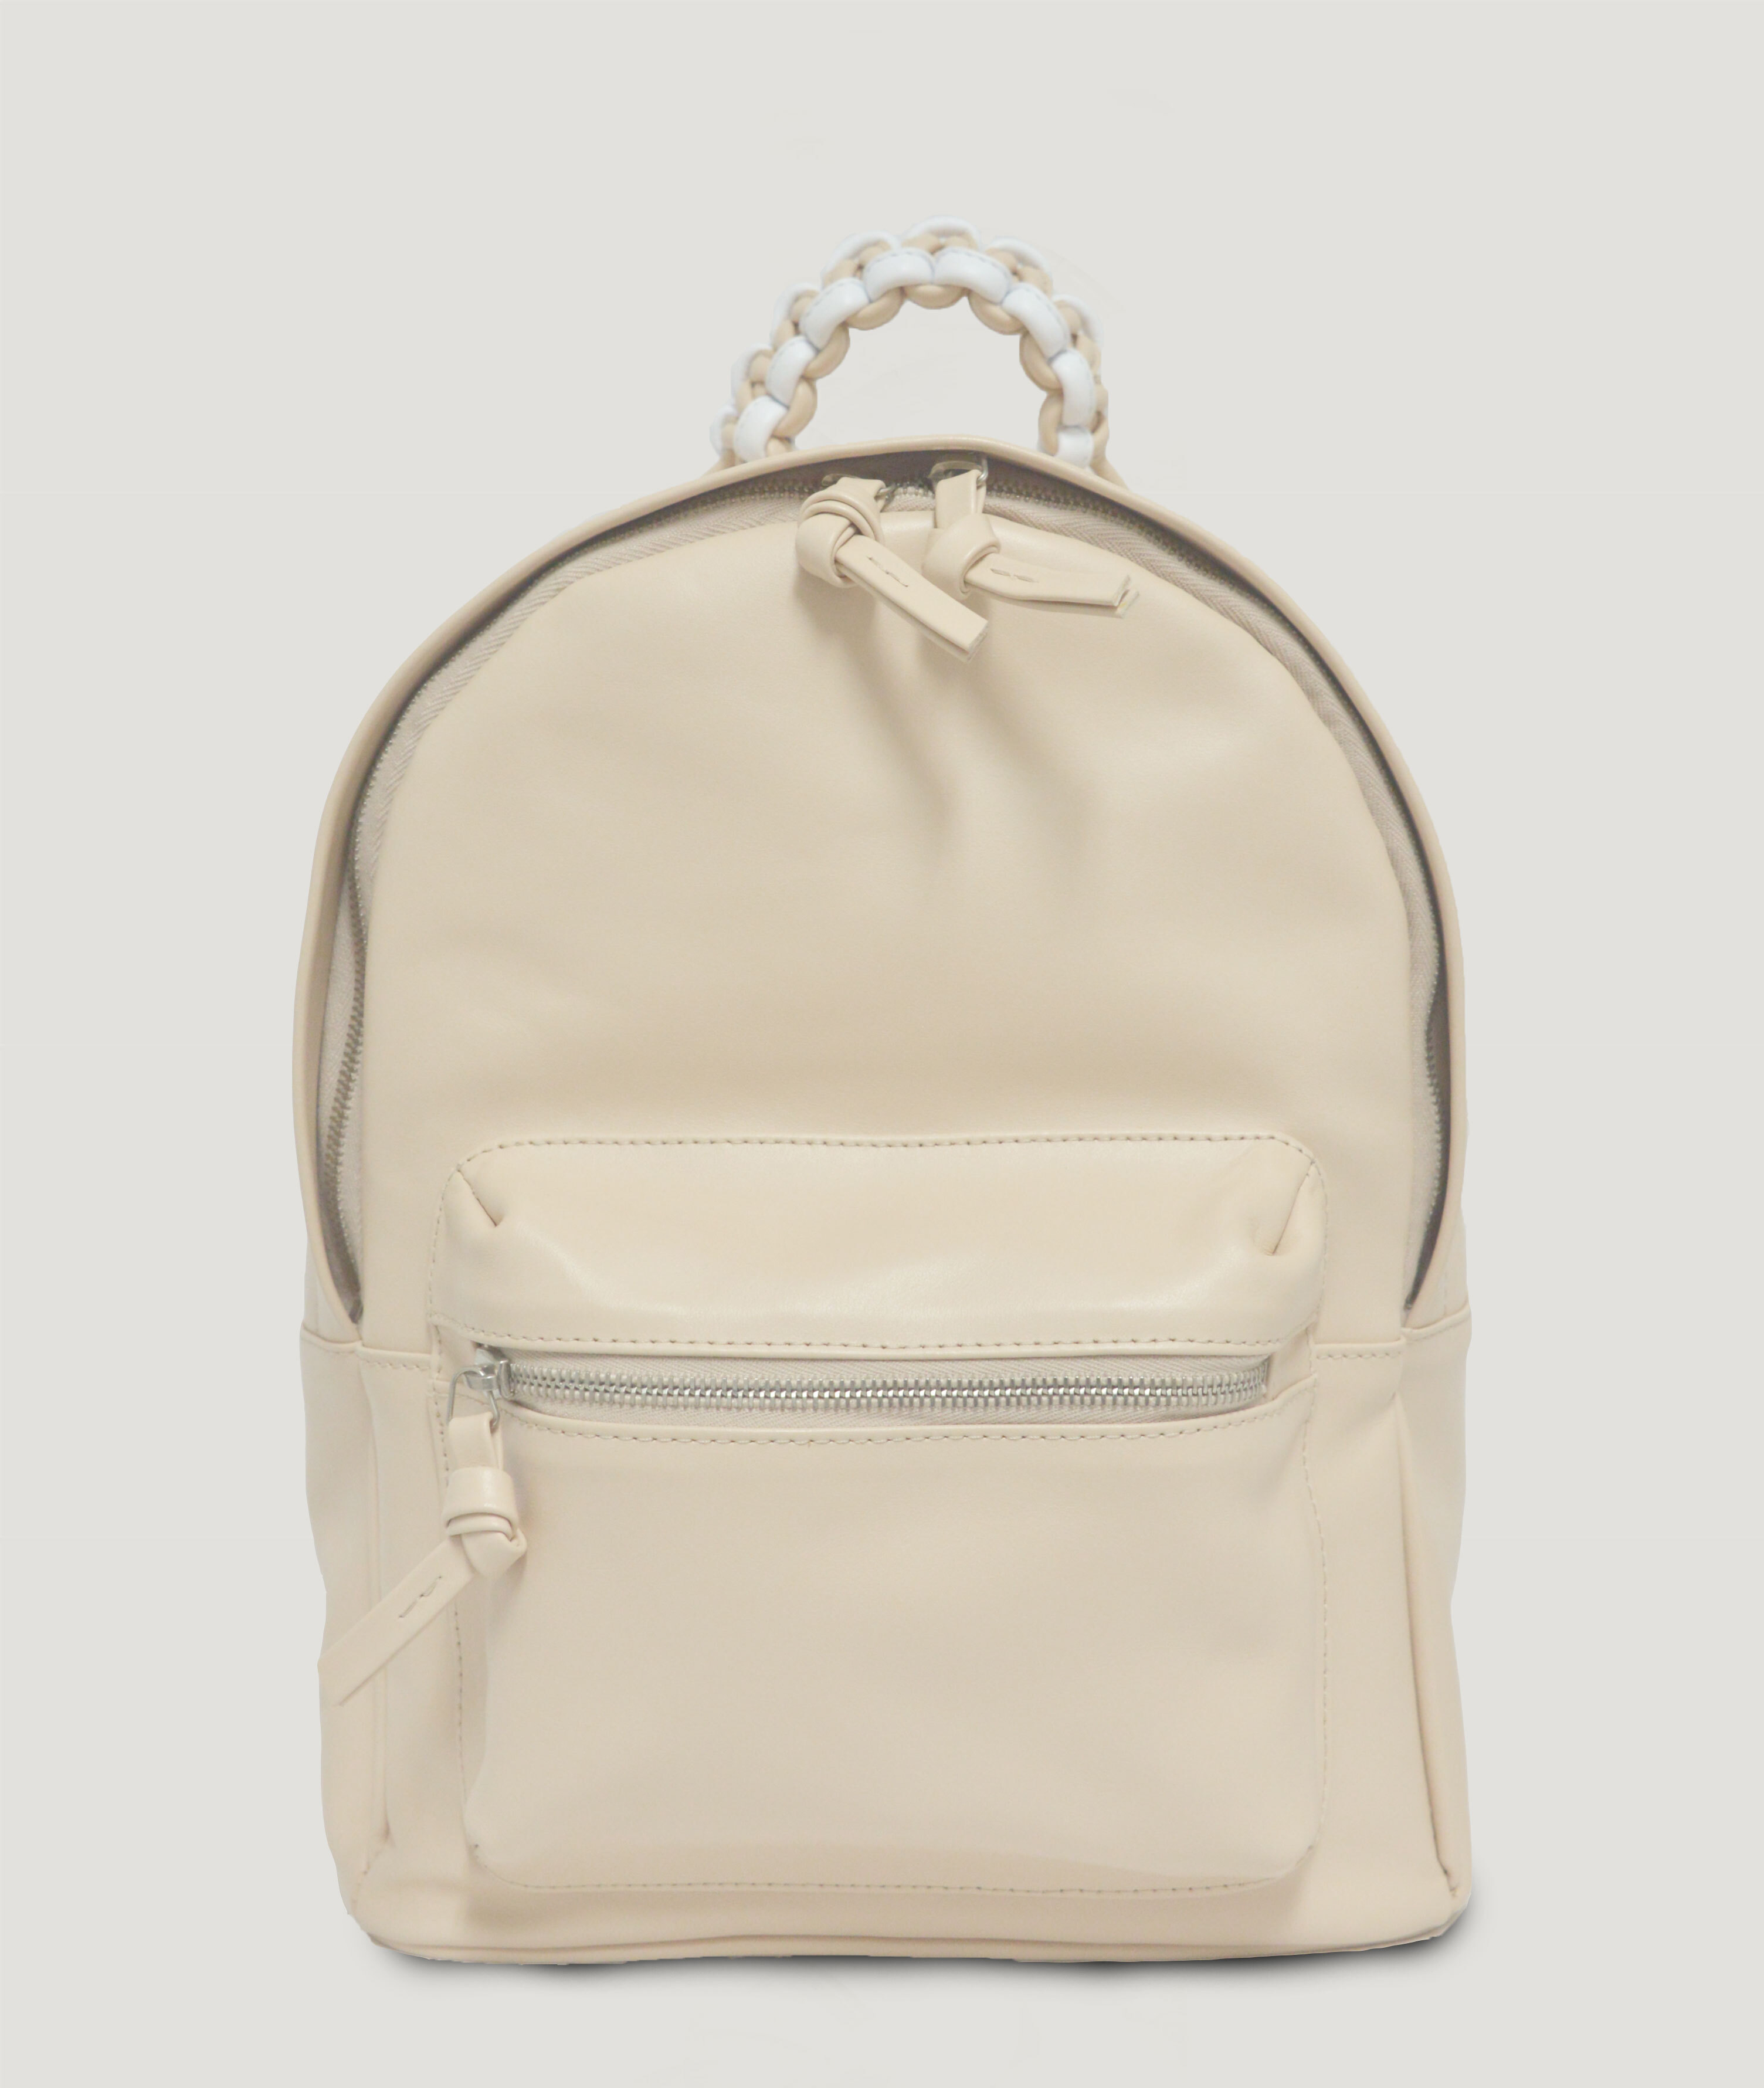 BACKPACK M BEIGE